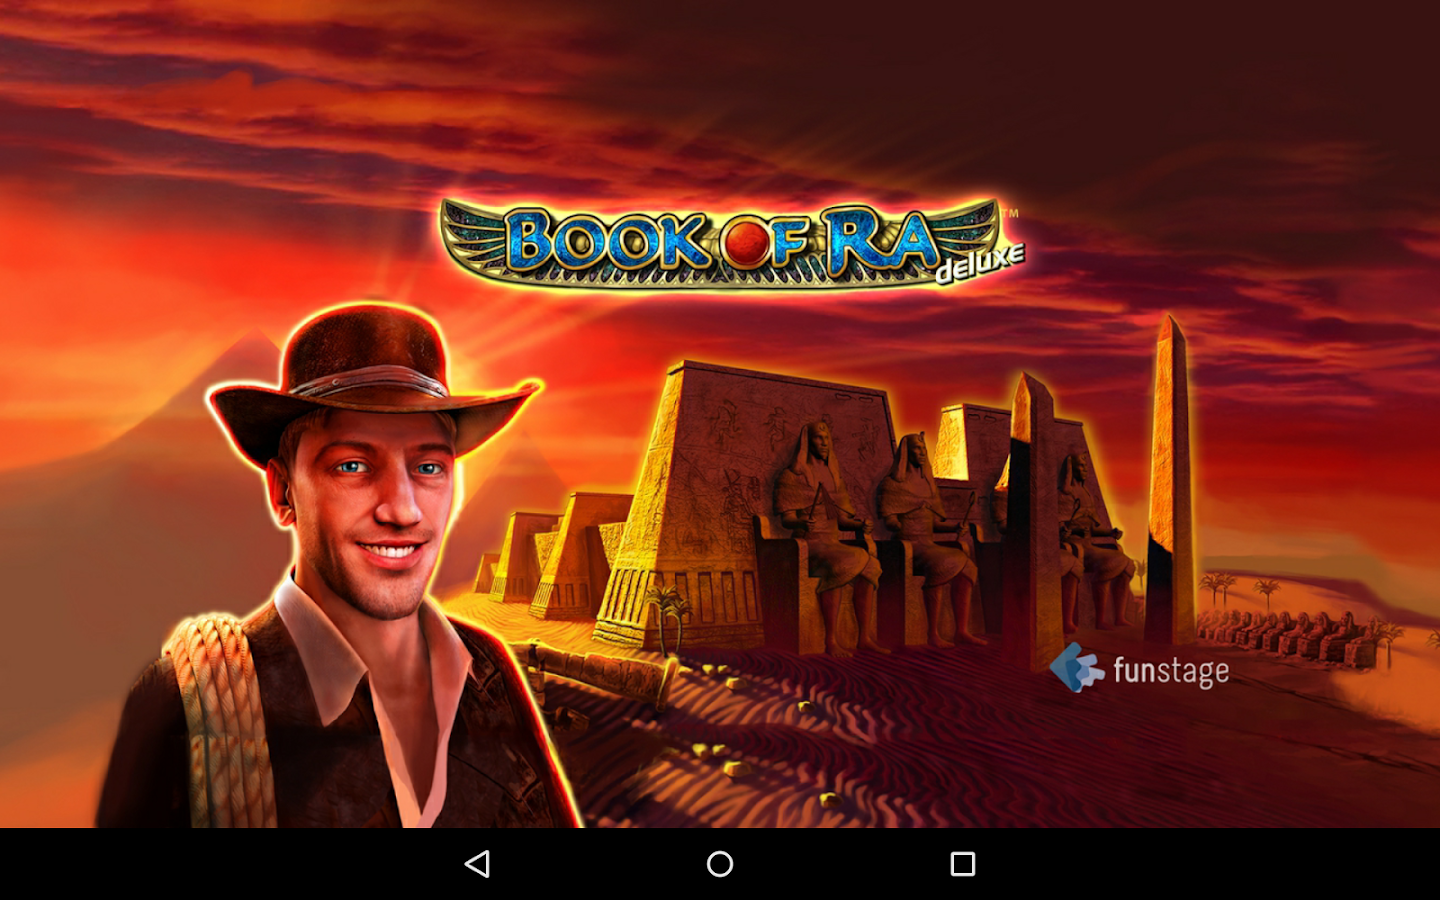 jackpot slots game online bokk of ra